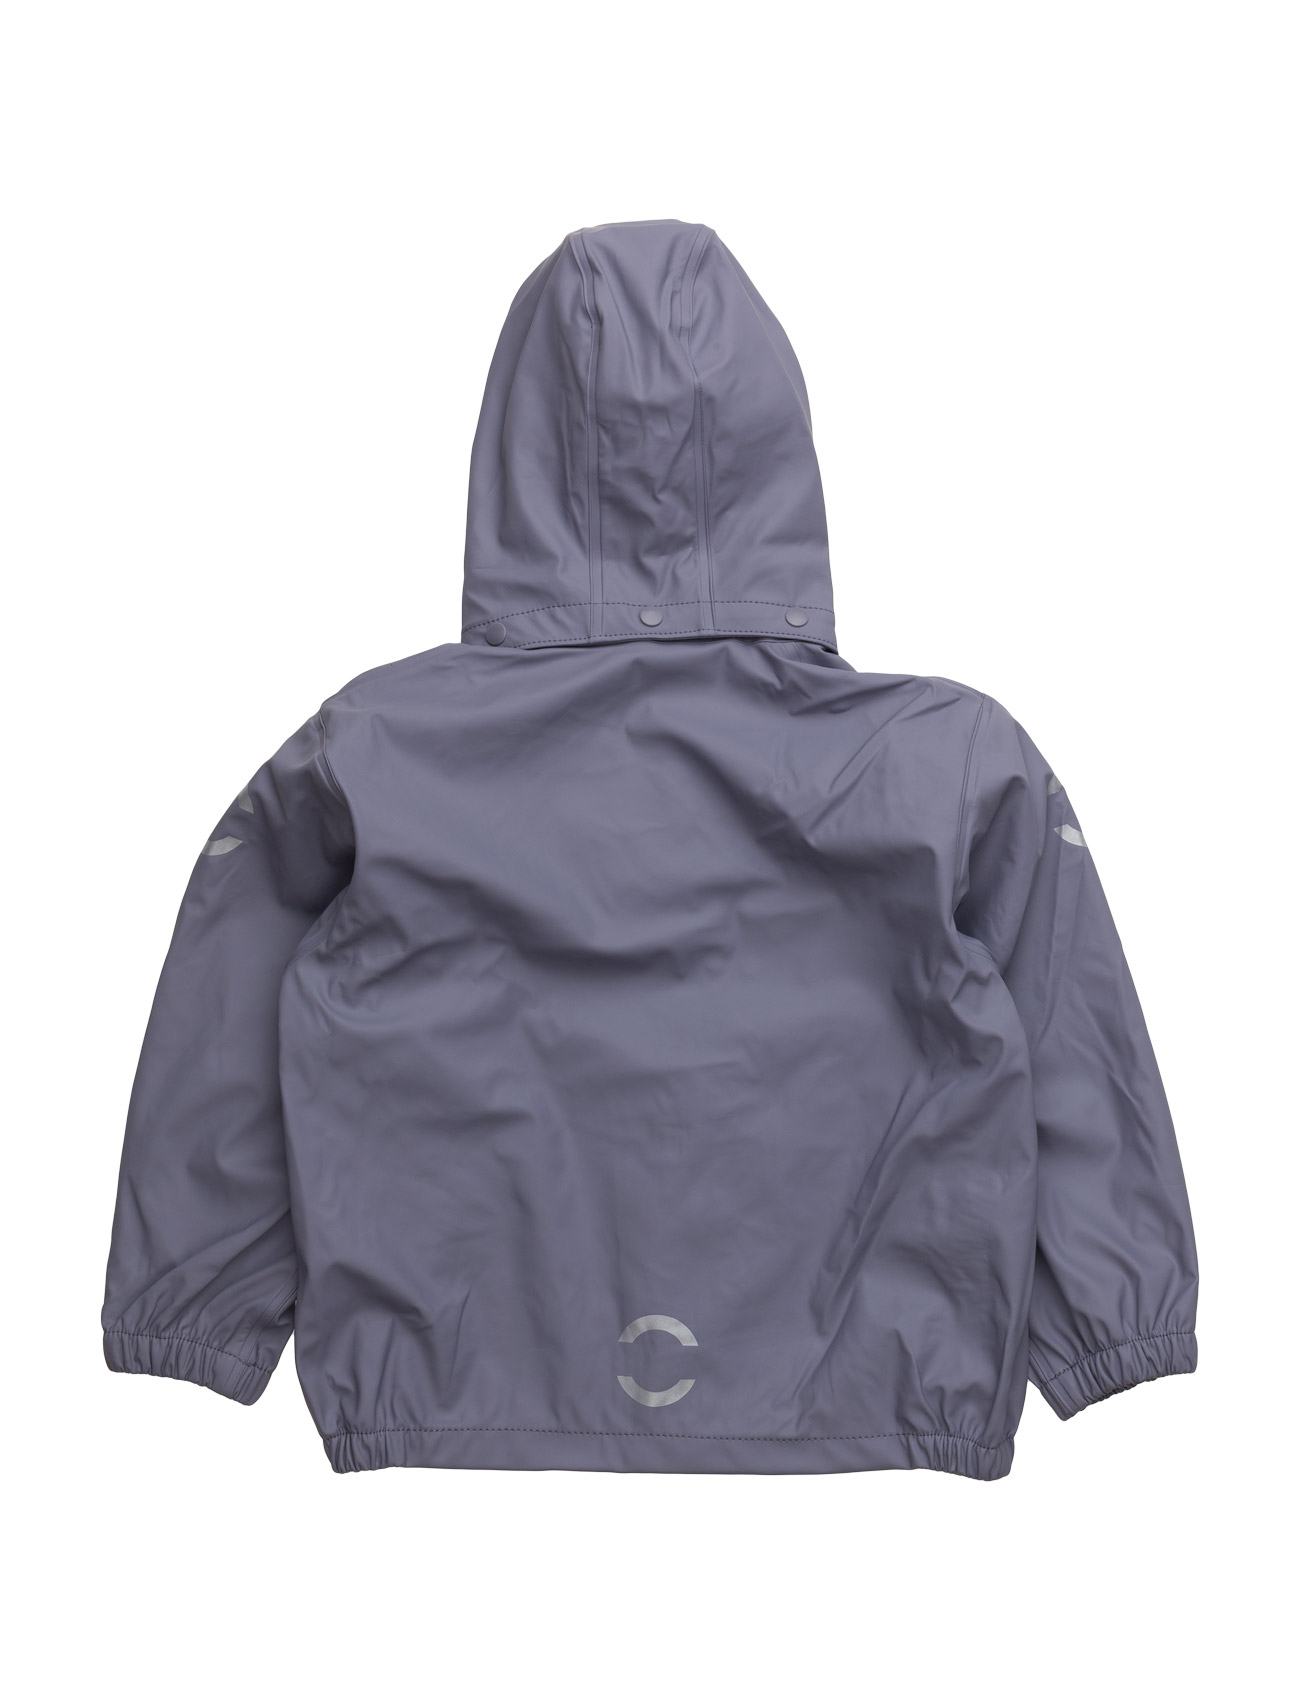 Mikk-Line Rain Wear, PU - Basic - DARK SYREN 718